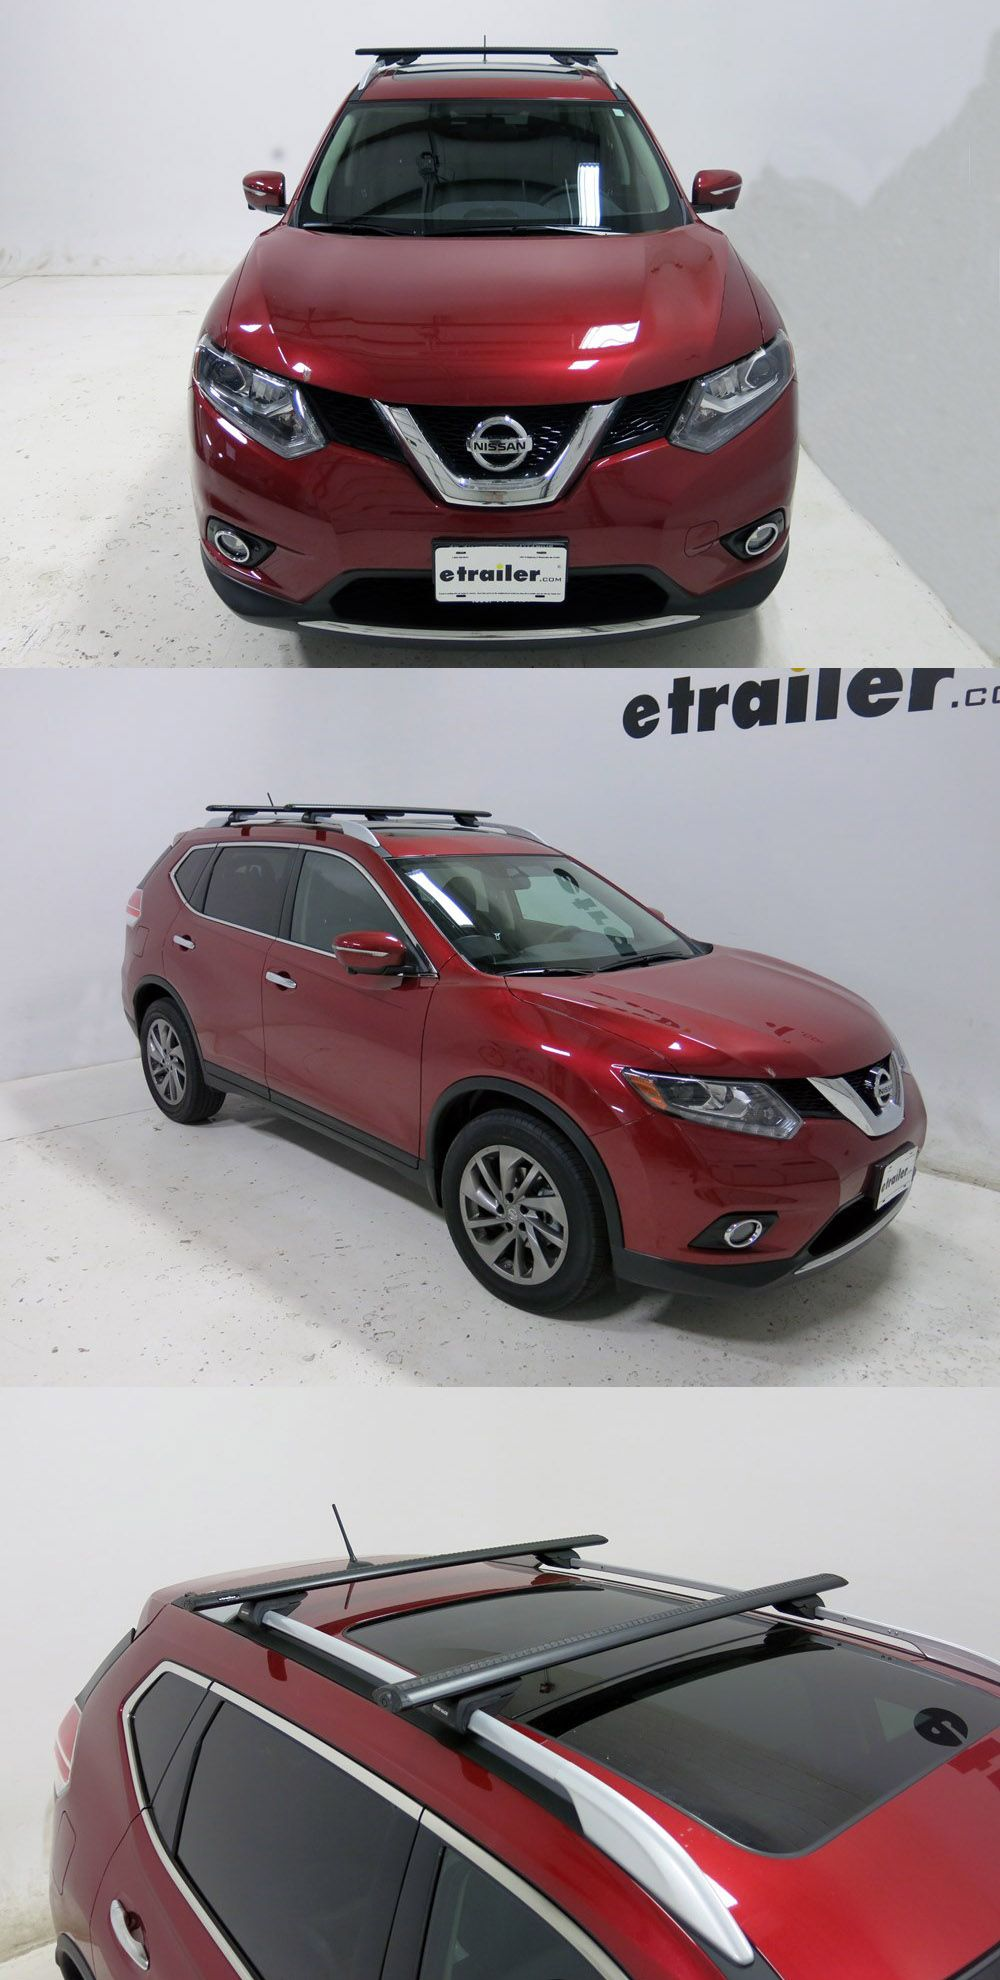 The Powder Is Calling Your Name And The Nissan Rogue Is Ready To Get You There Snow Accessories For Th Nissan Rogue Accessories Nissan Rogue 2014 Nissan Rogue